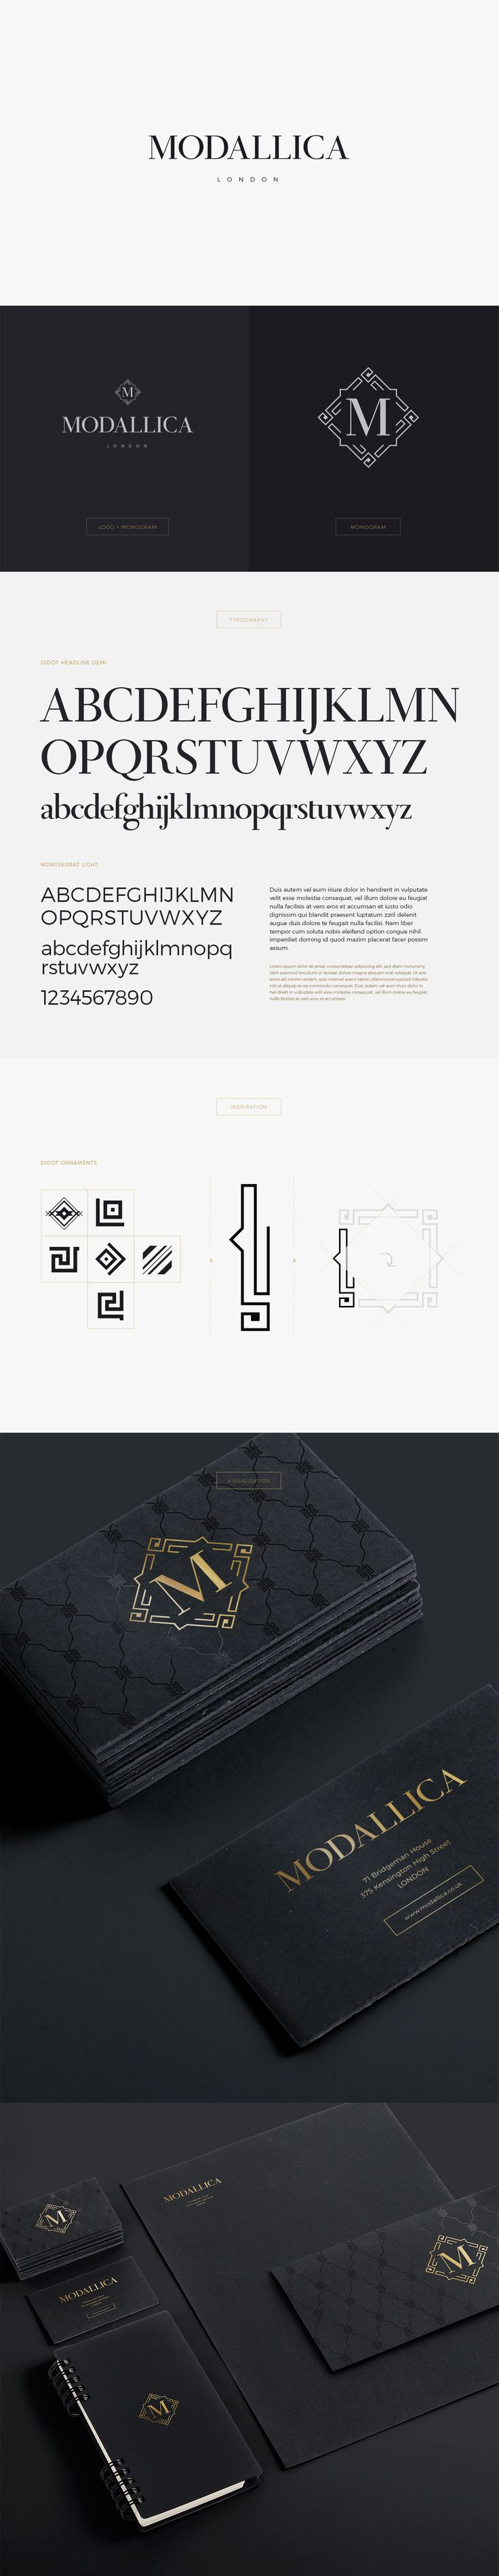 Logo design and identity elements for Modallica (London, GB)